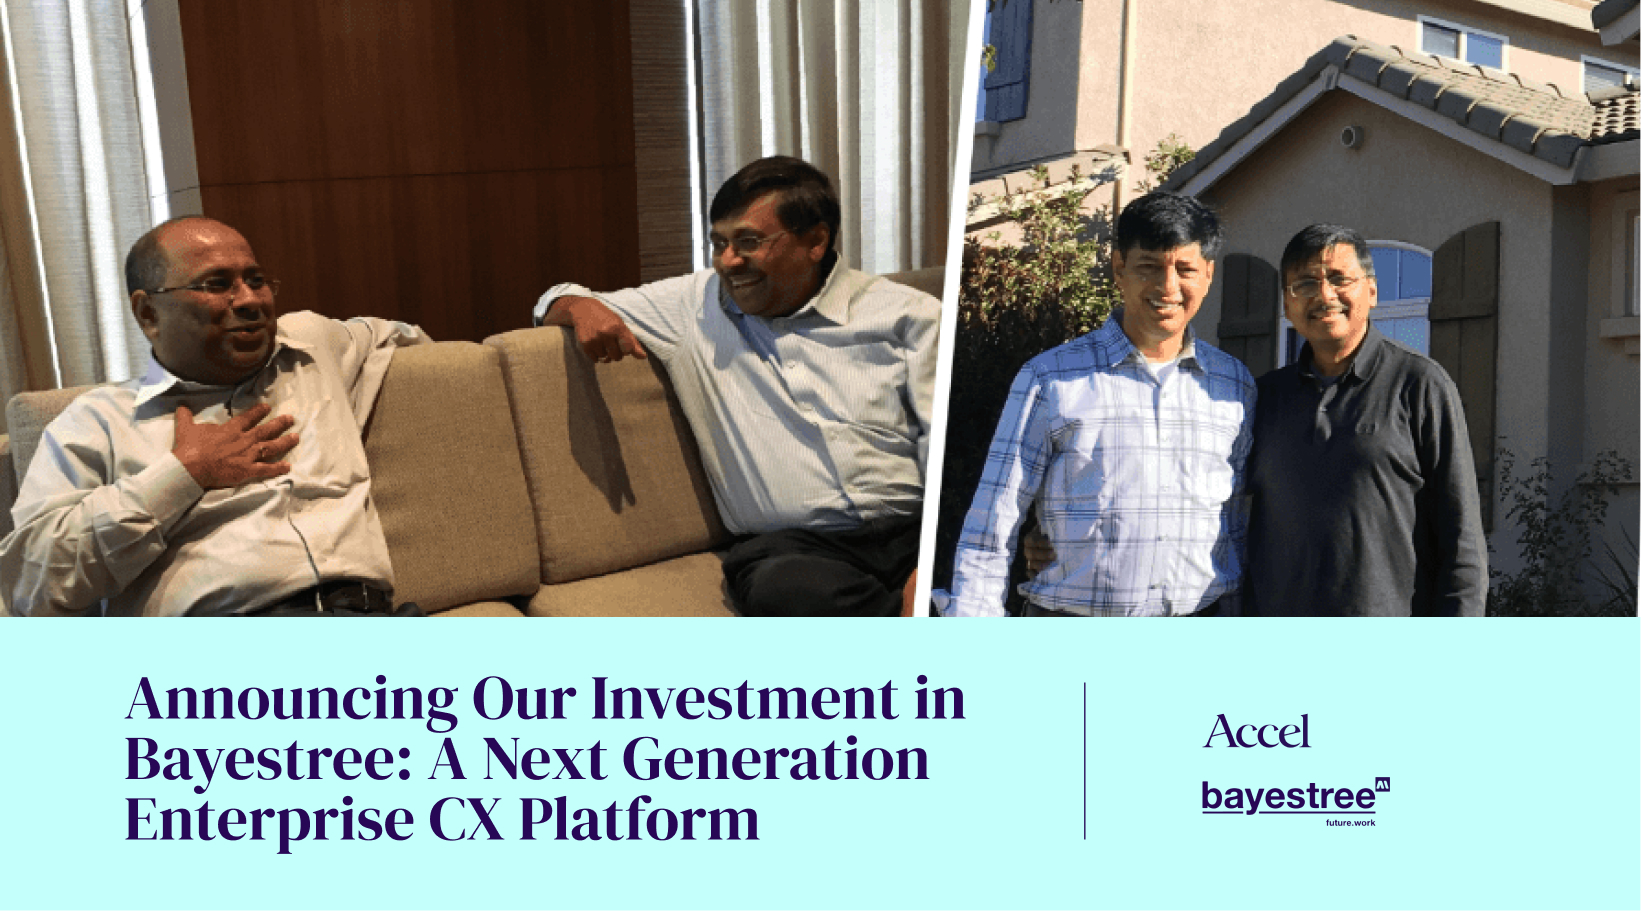 Announcing Our Investment in Bayestree: A Next Generation Enterprise CX Platform